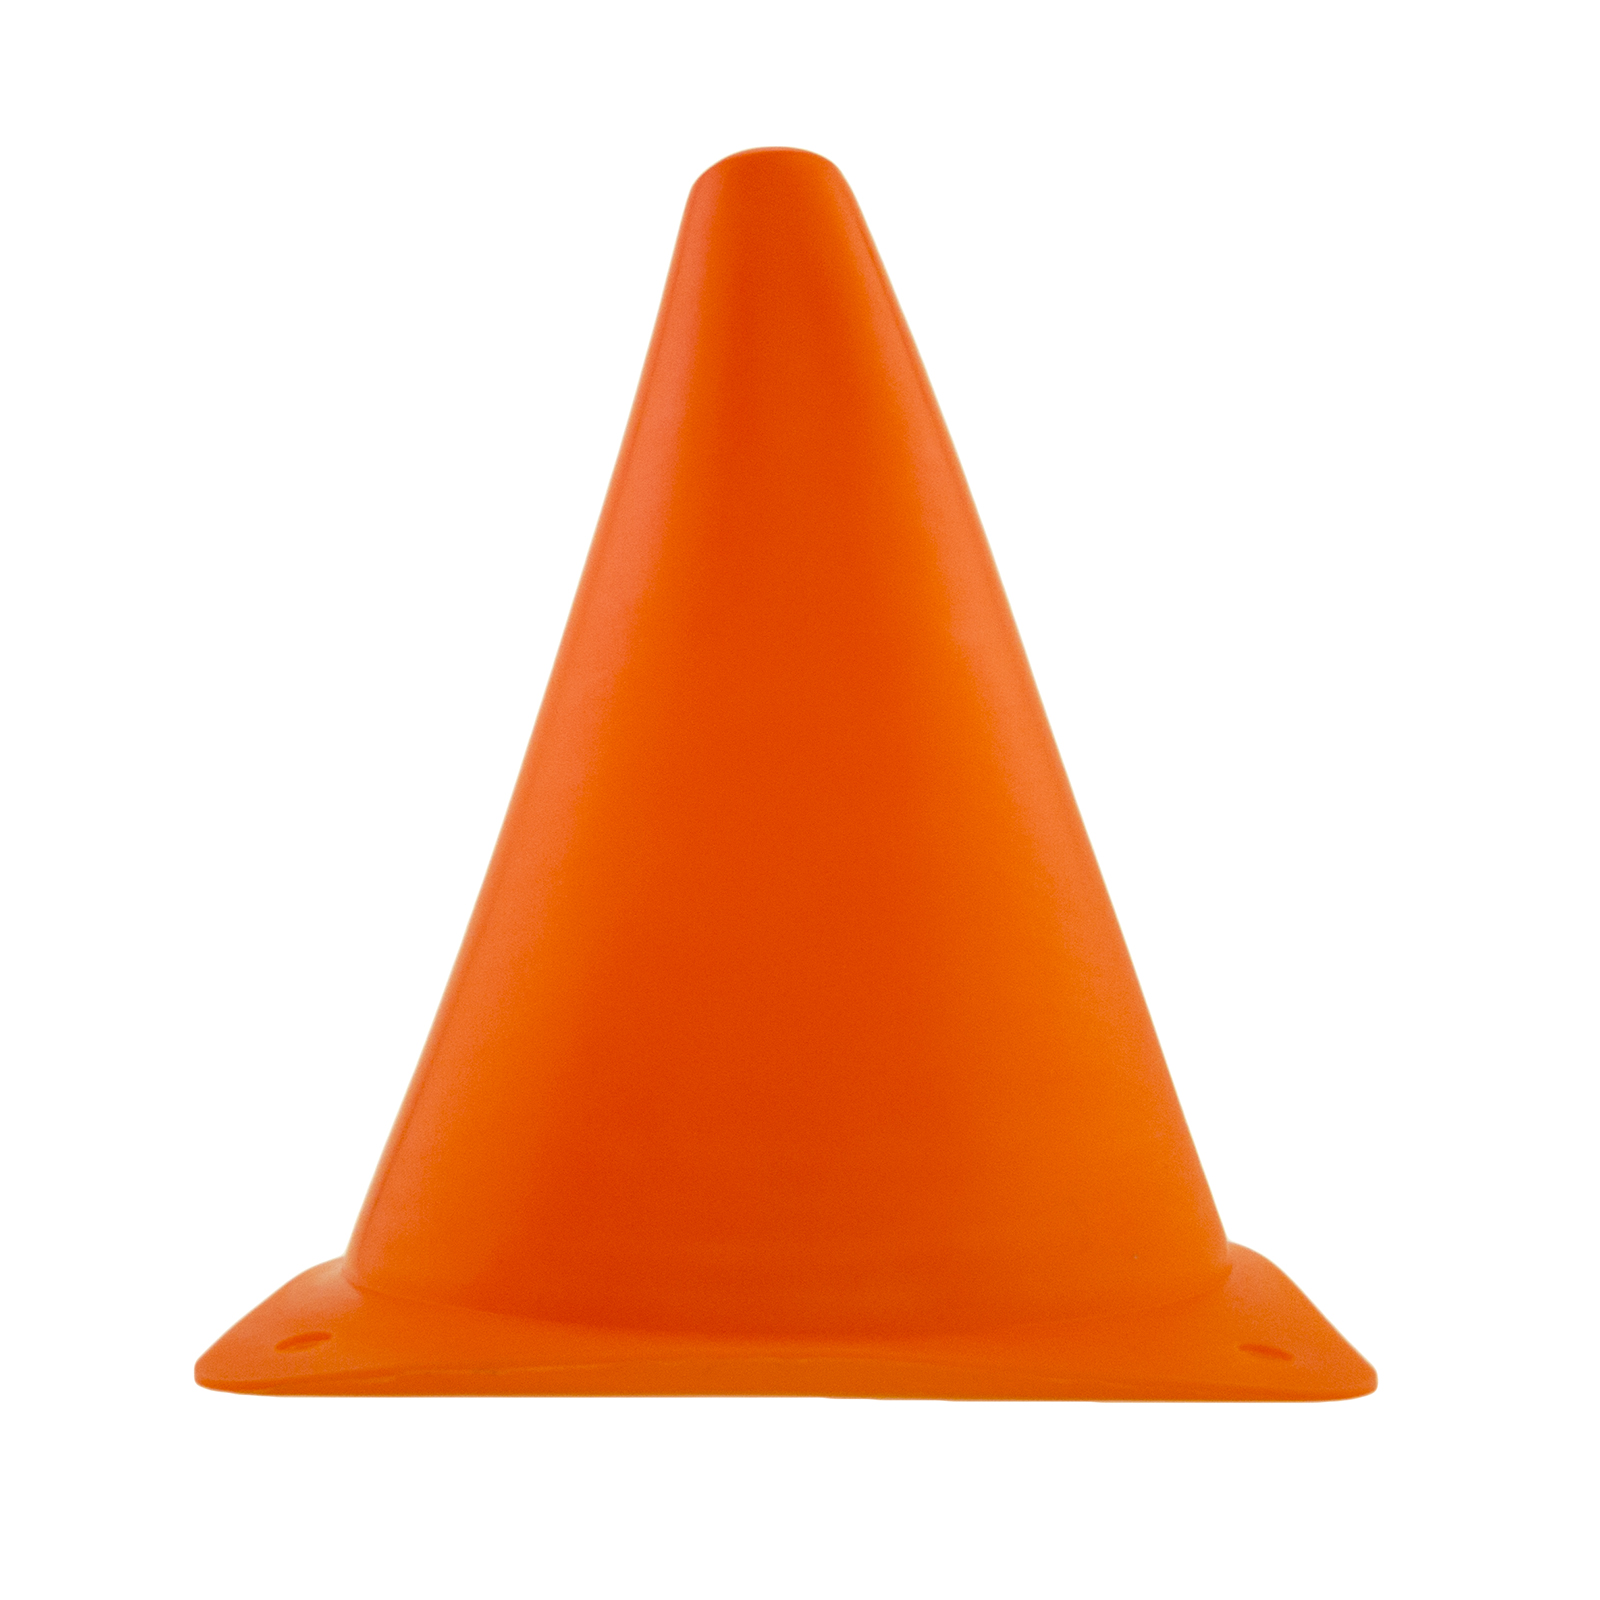 Home Decor Store New Training Cones 7 Quot Tall Sports Orange Traffic Safety